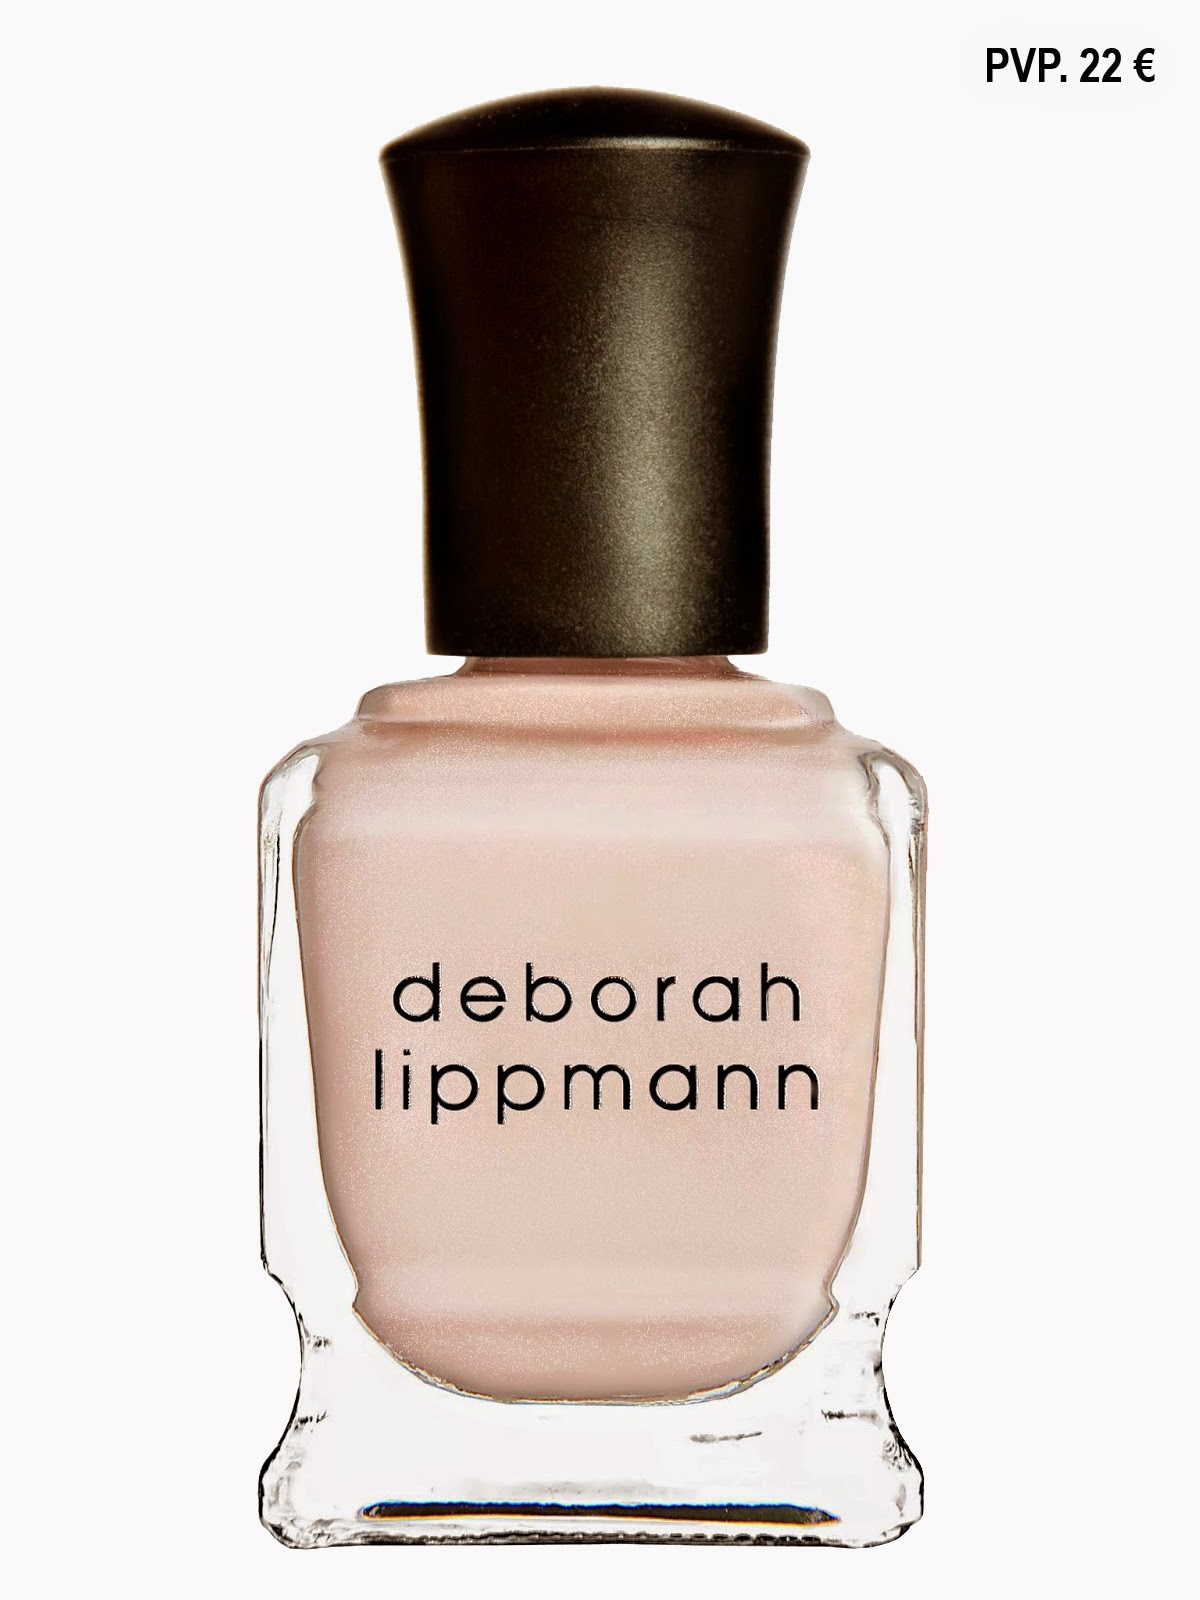 Escape Madrid, Deborah Lippmannn, Nails, Beauty, Oscar 2015, Dakota Johnson, Lupita, Manicura de Oscar